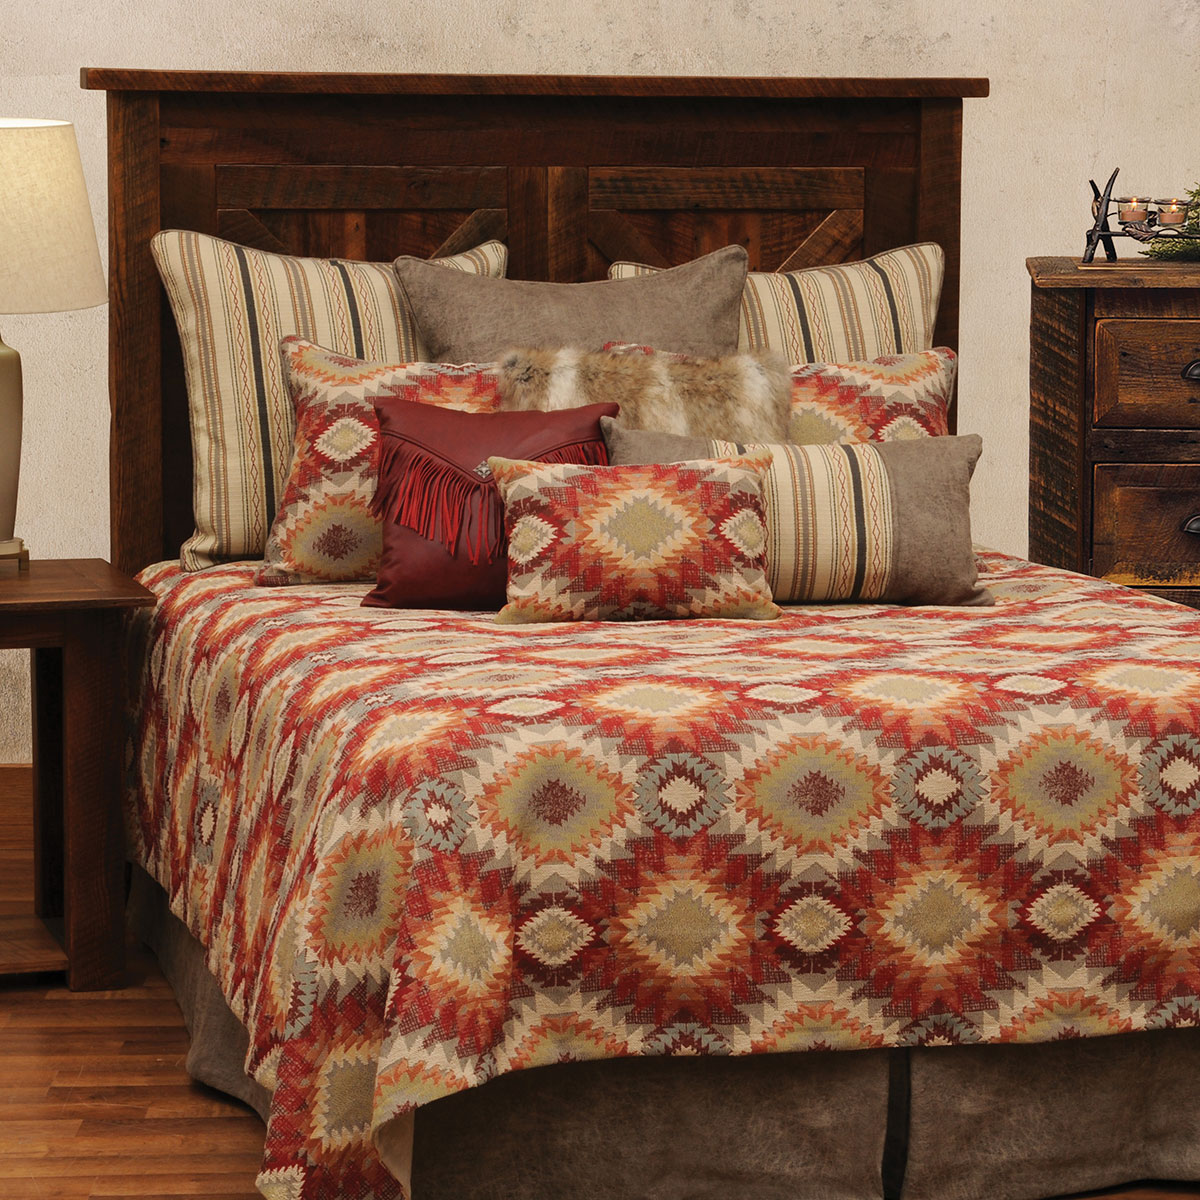 Yuma Sol Deluxe Bed Set - Full